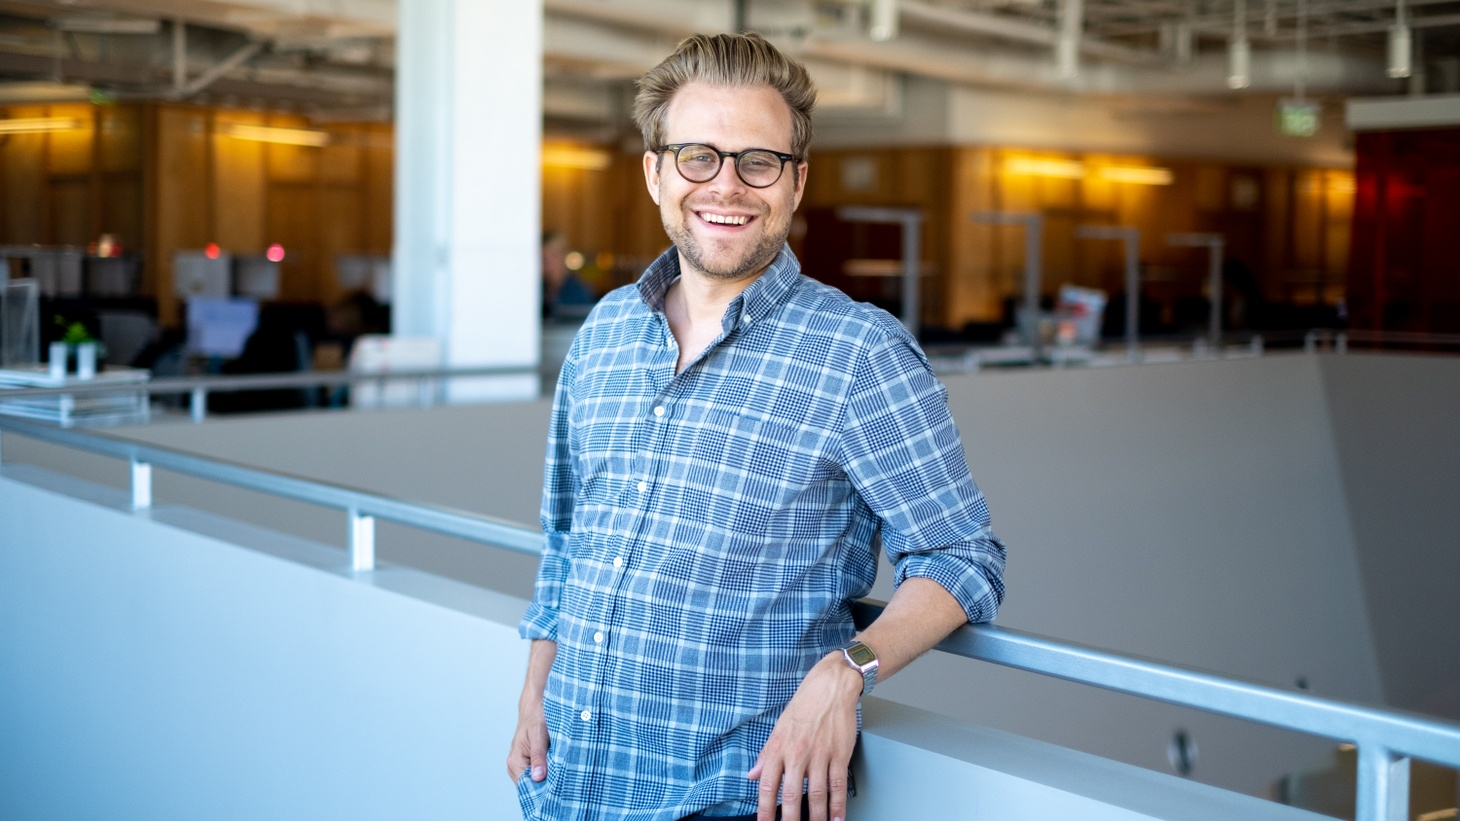 Adam Conover at KCRW, August 13, 2019.